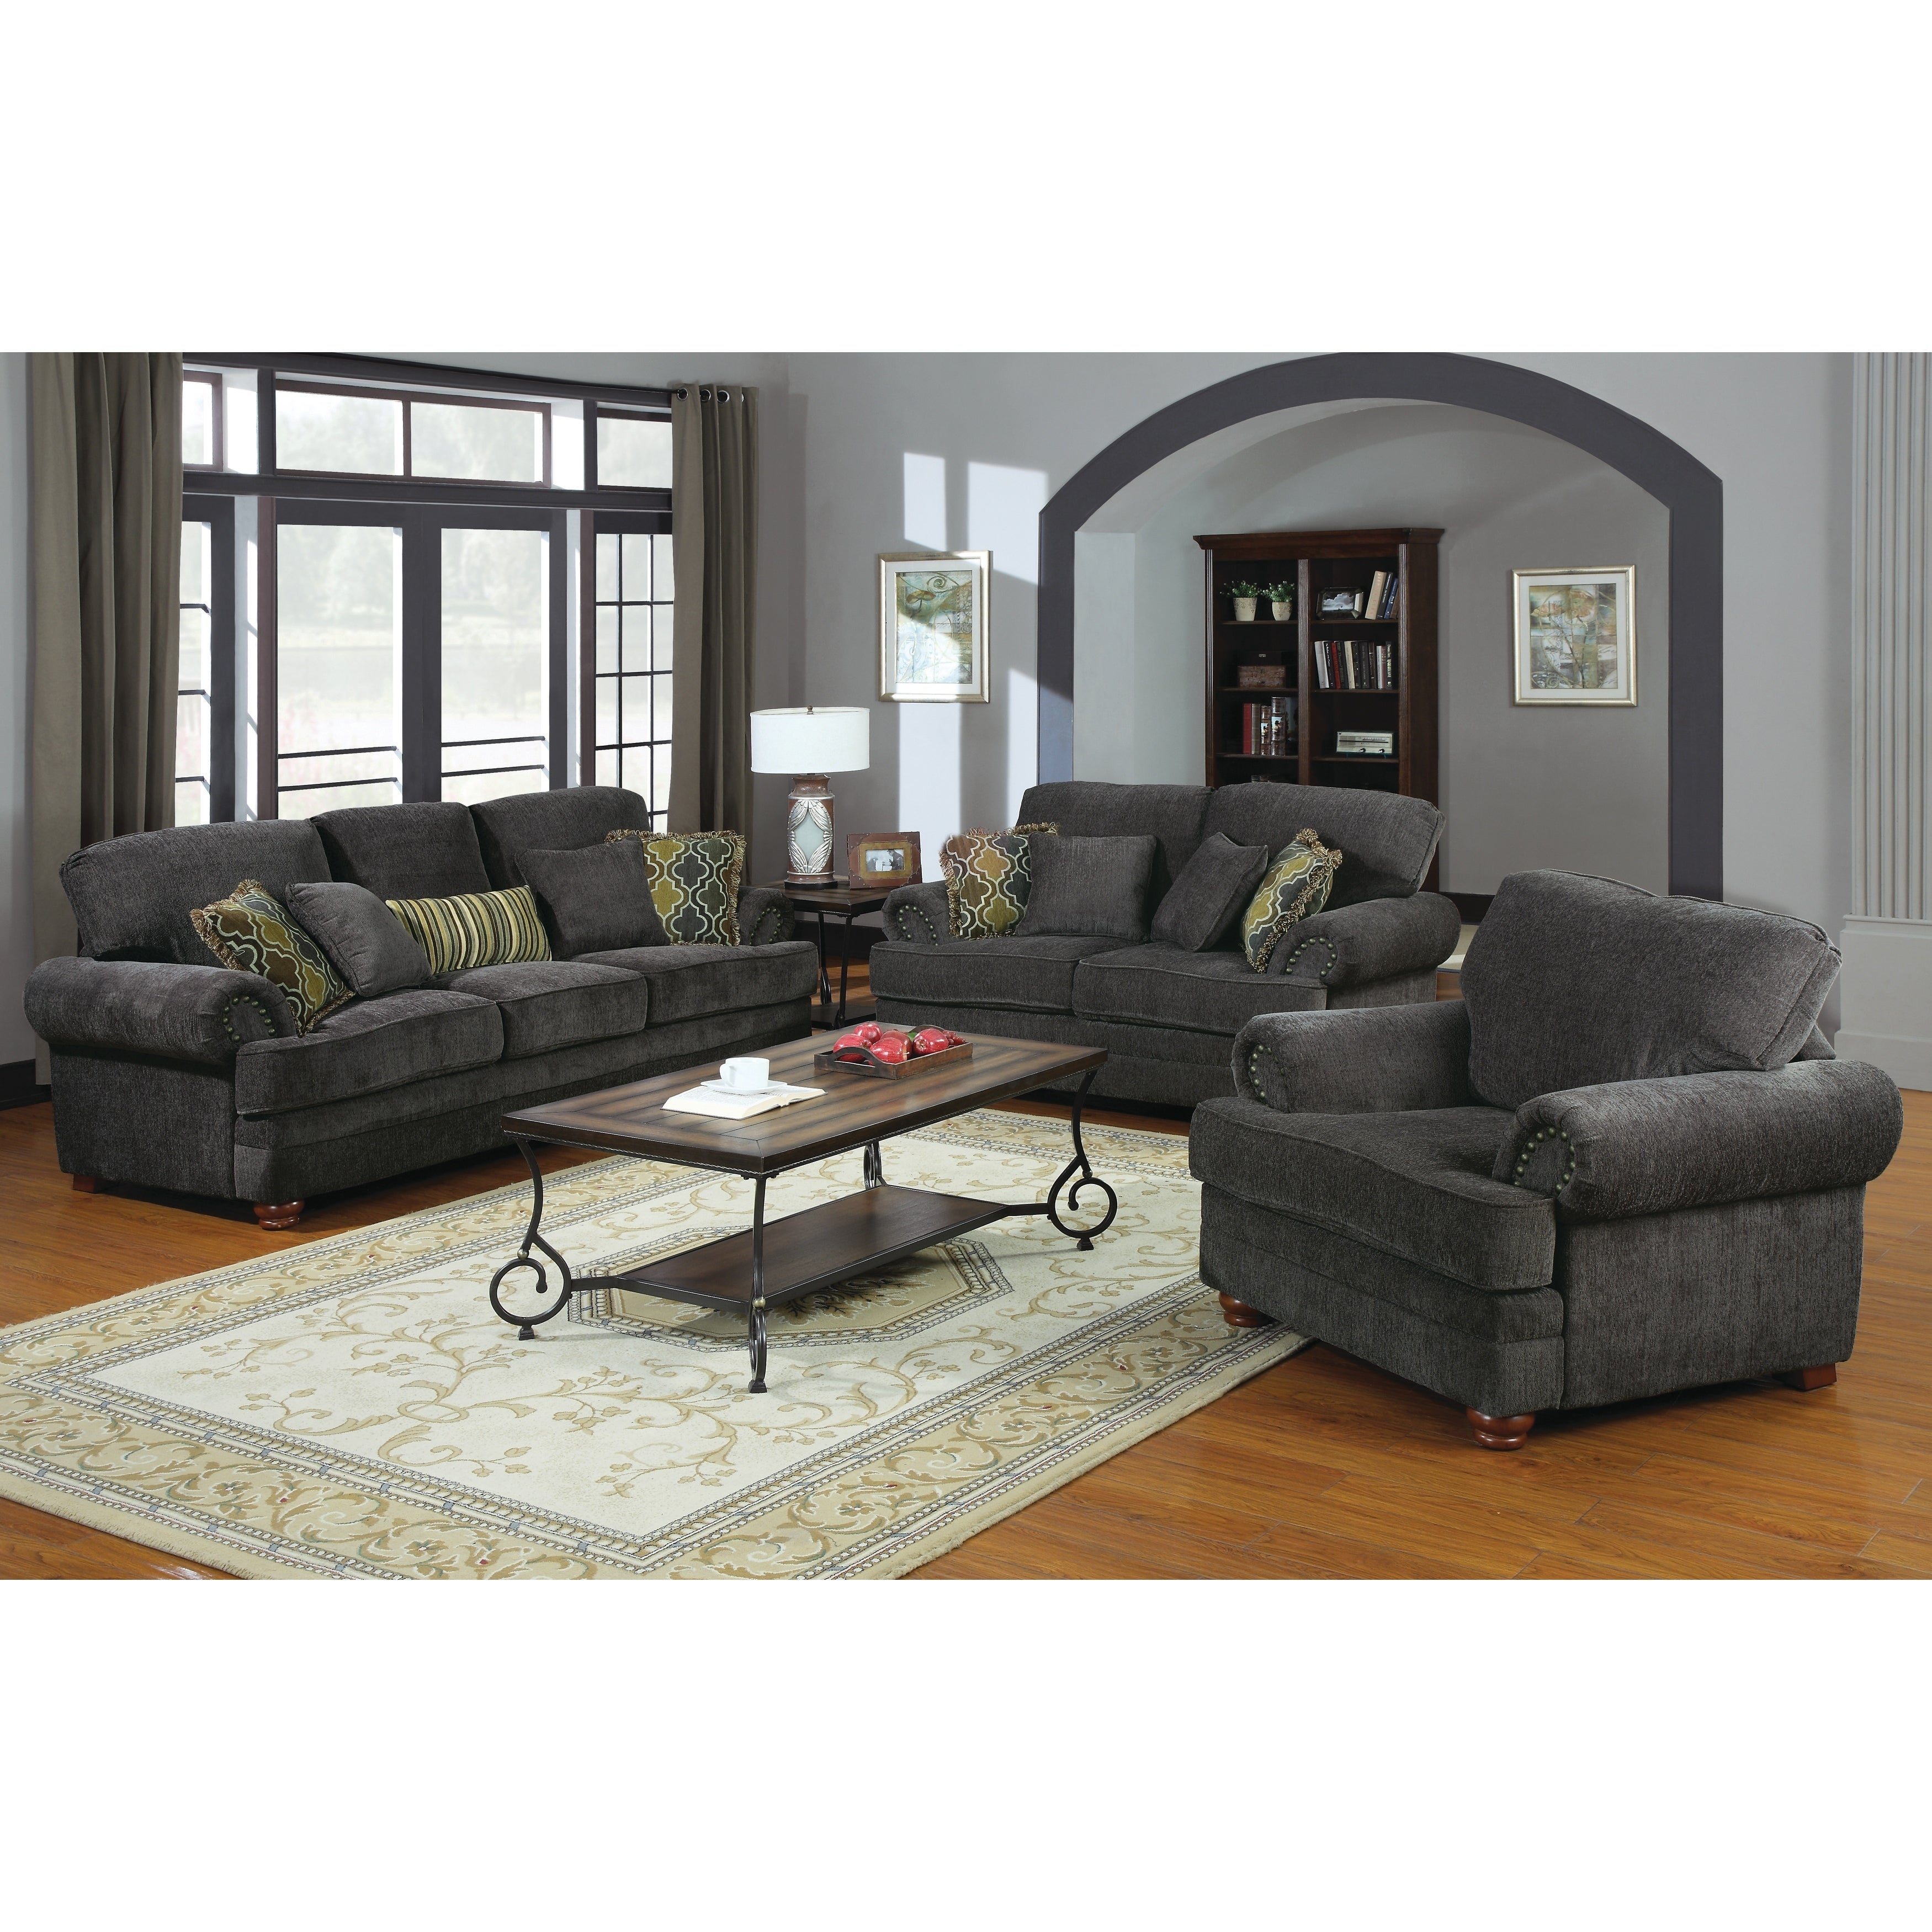 Colton Grey 3-piece Living Room Set - N/A